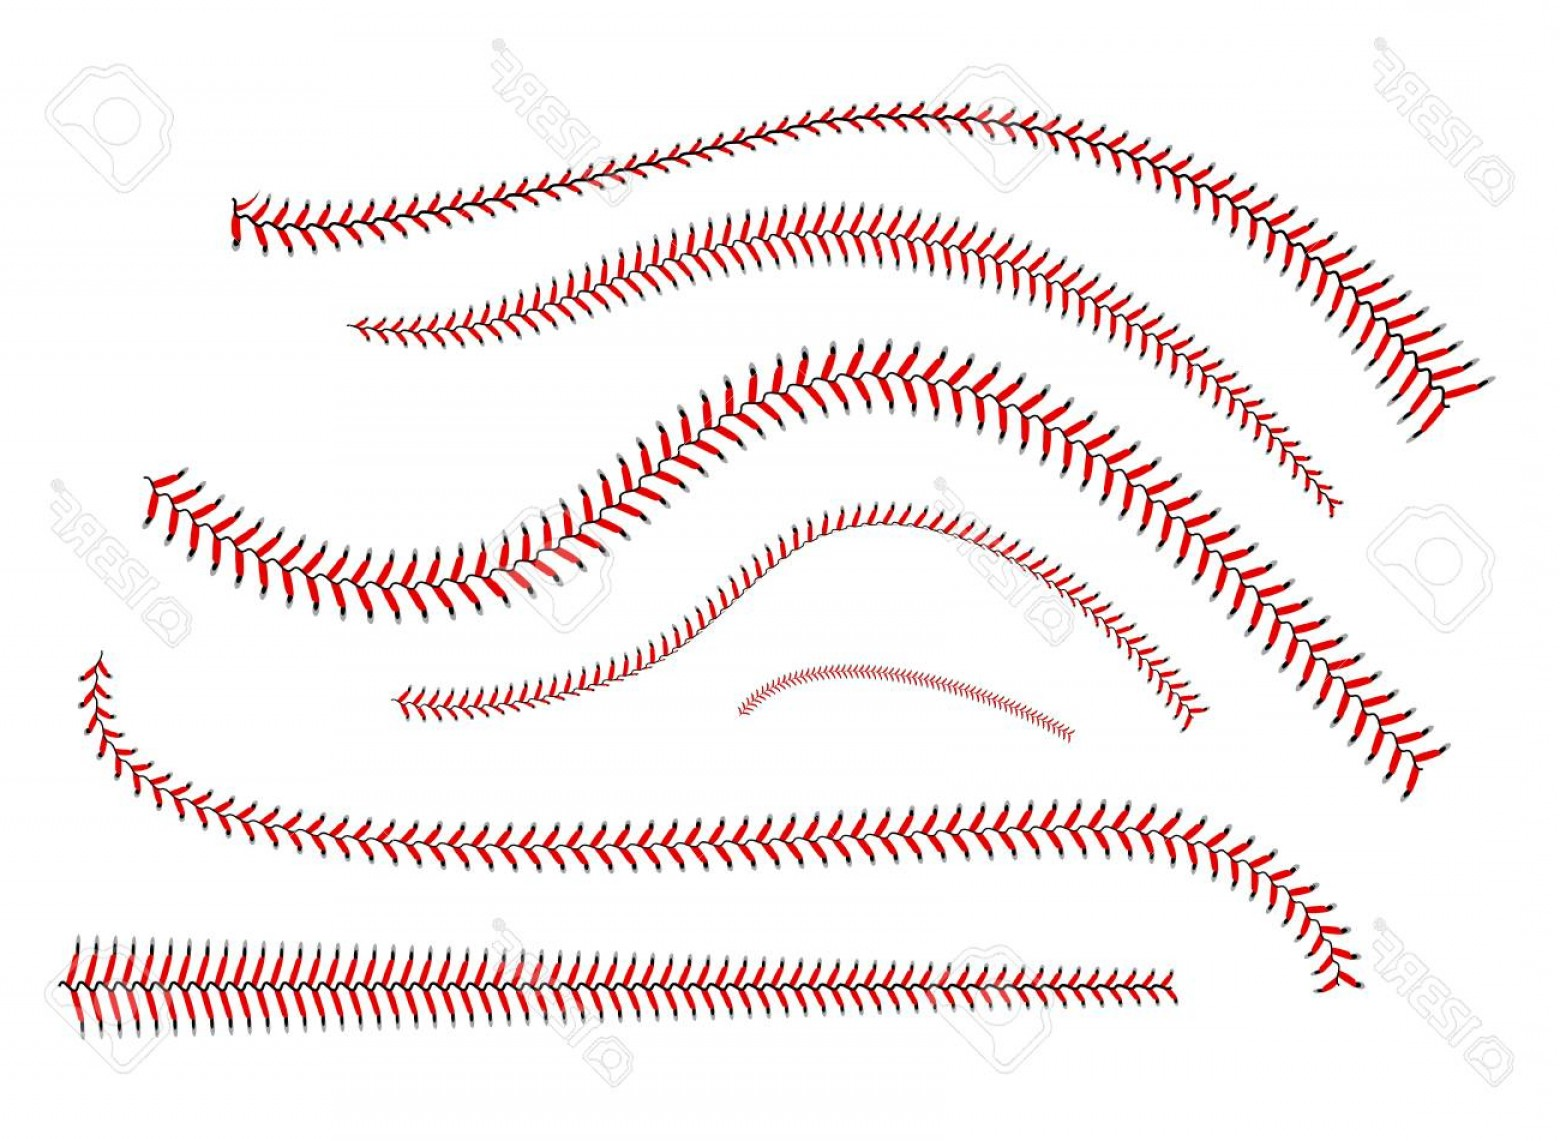 1560x1141 Home Plate With Stitches Vector Shopatcloth